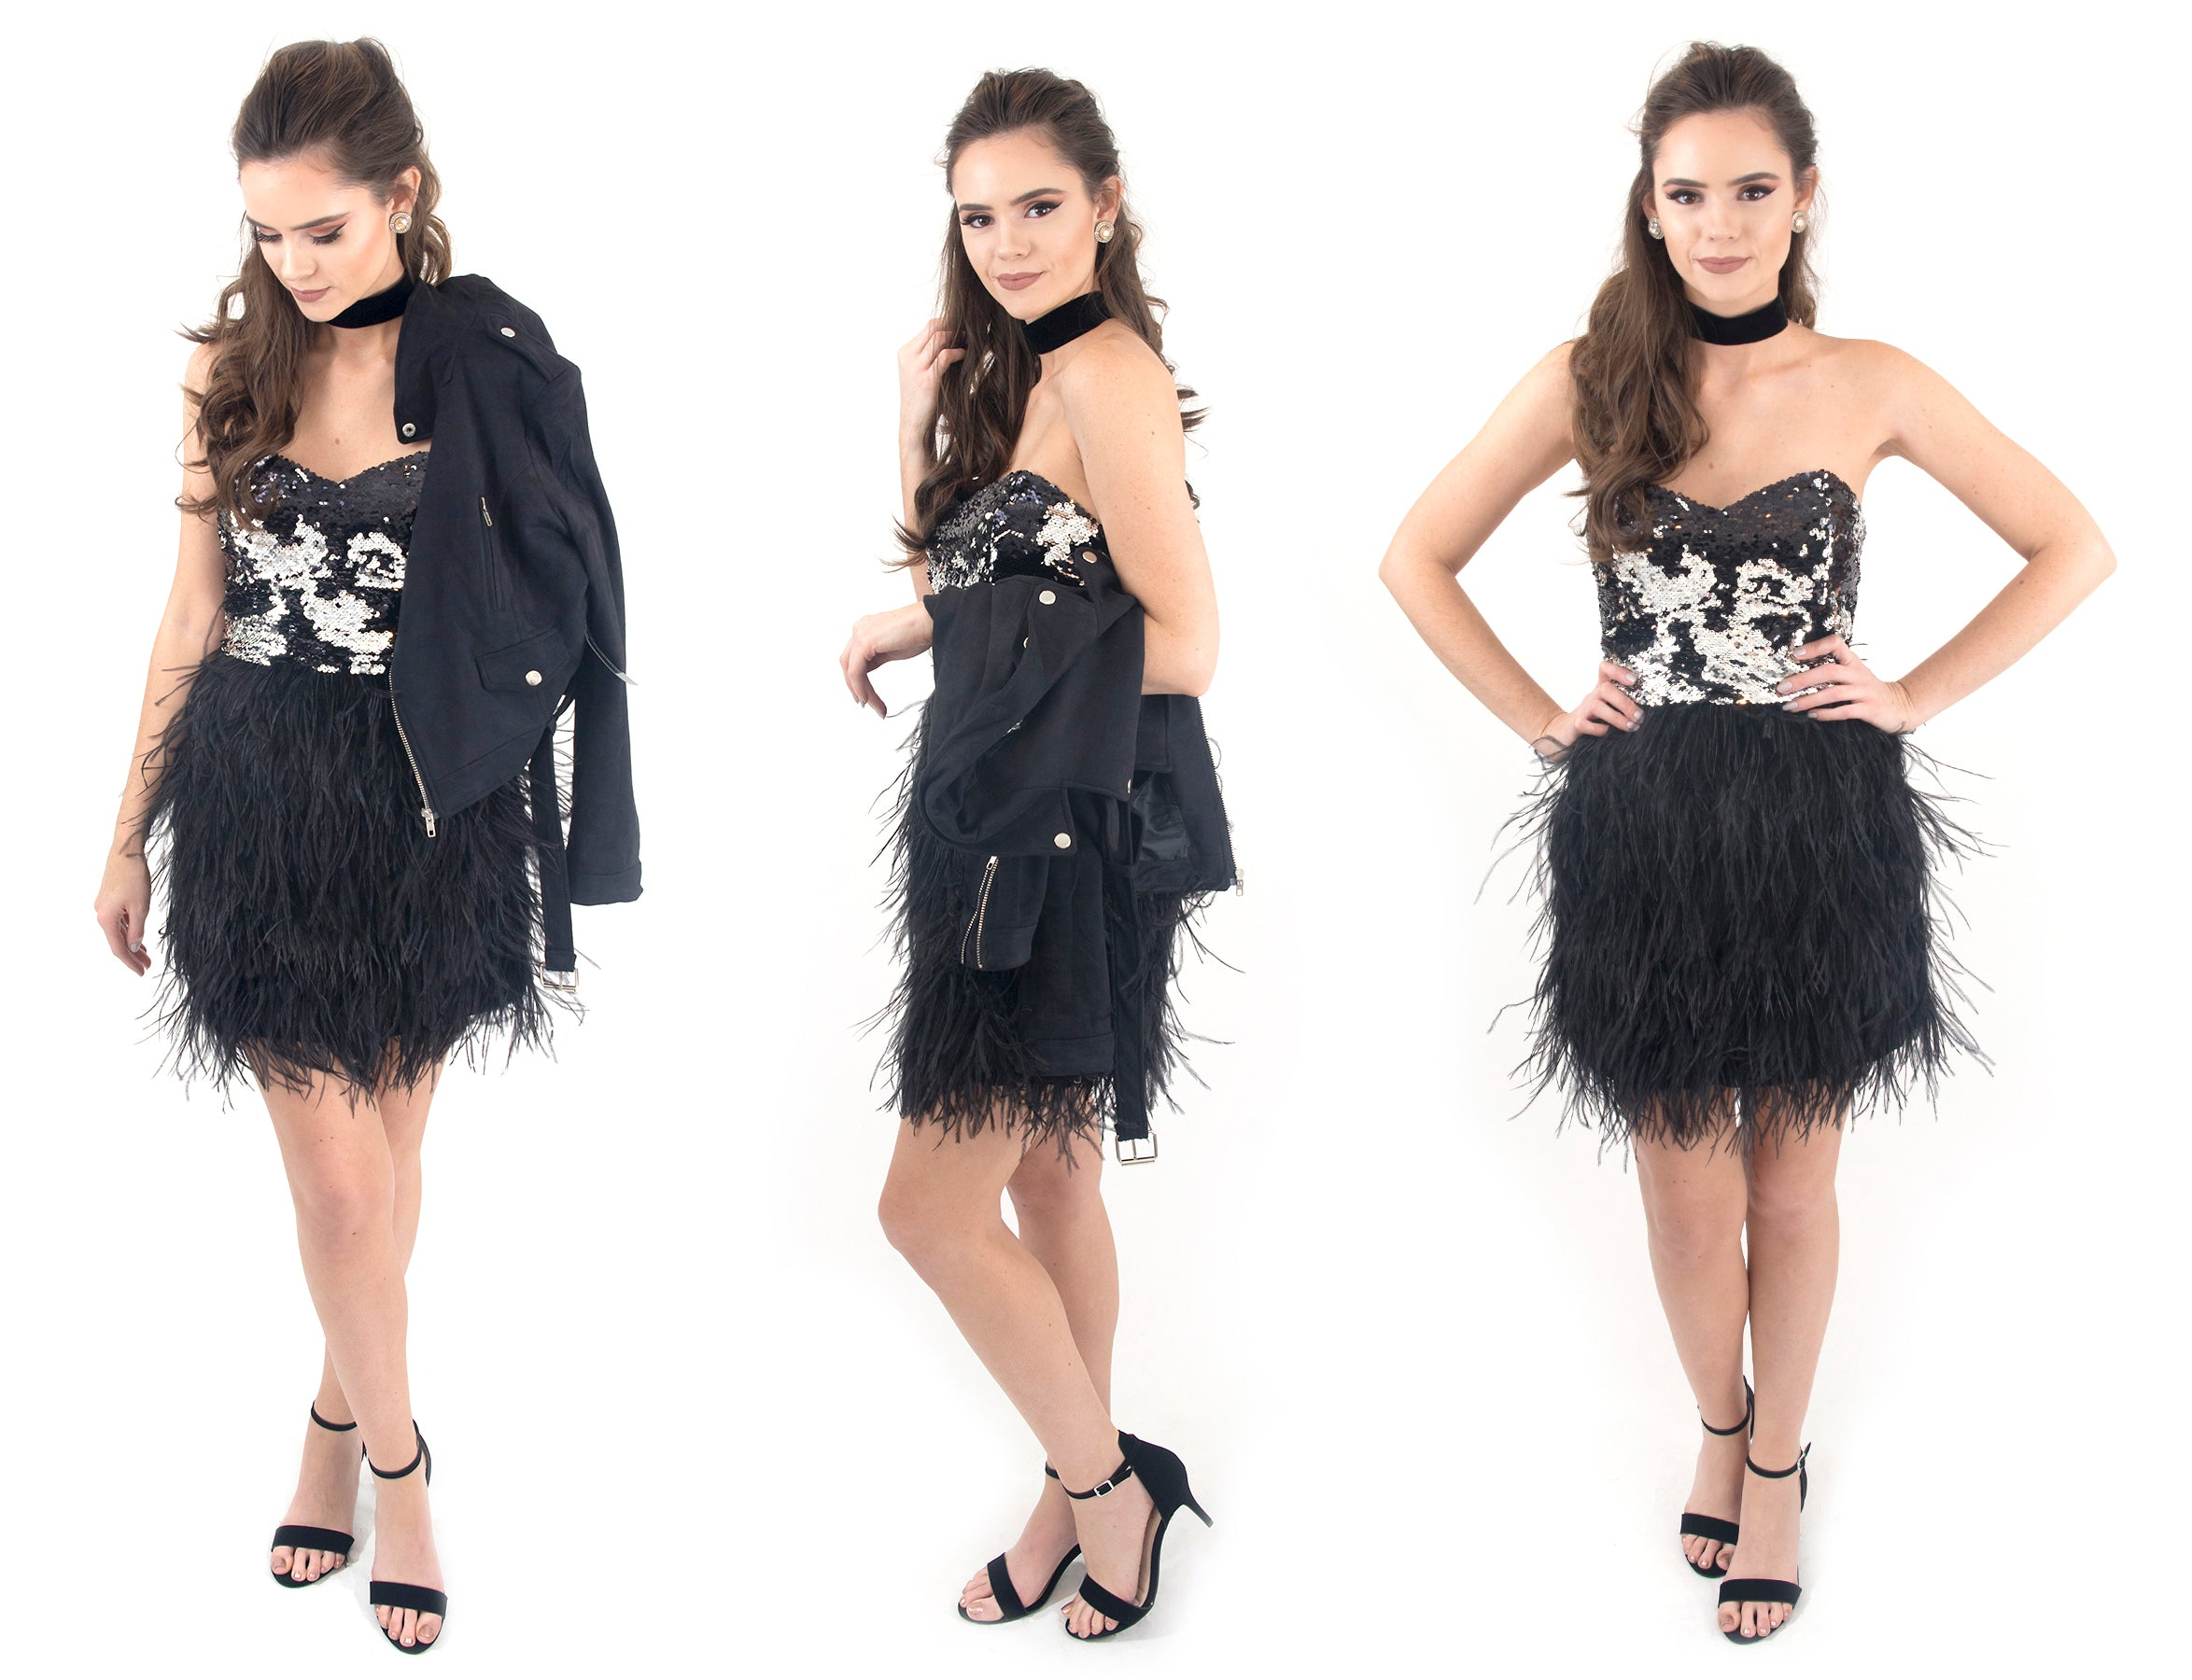 Black feather skirt dress with sequin bodice at Eccentrics Boutique